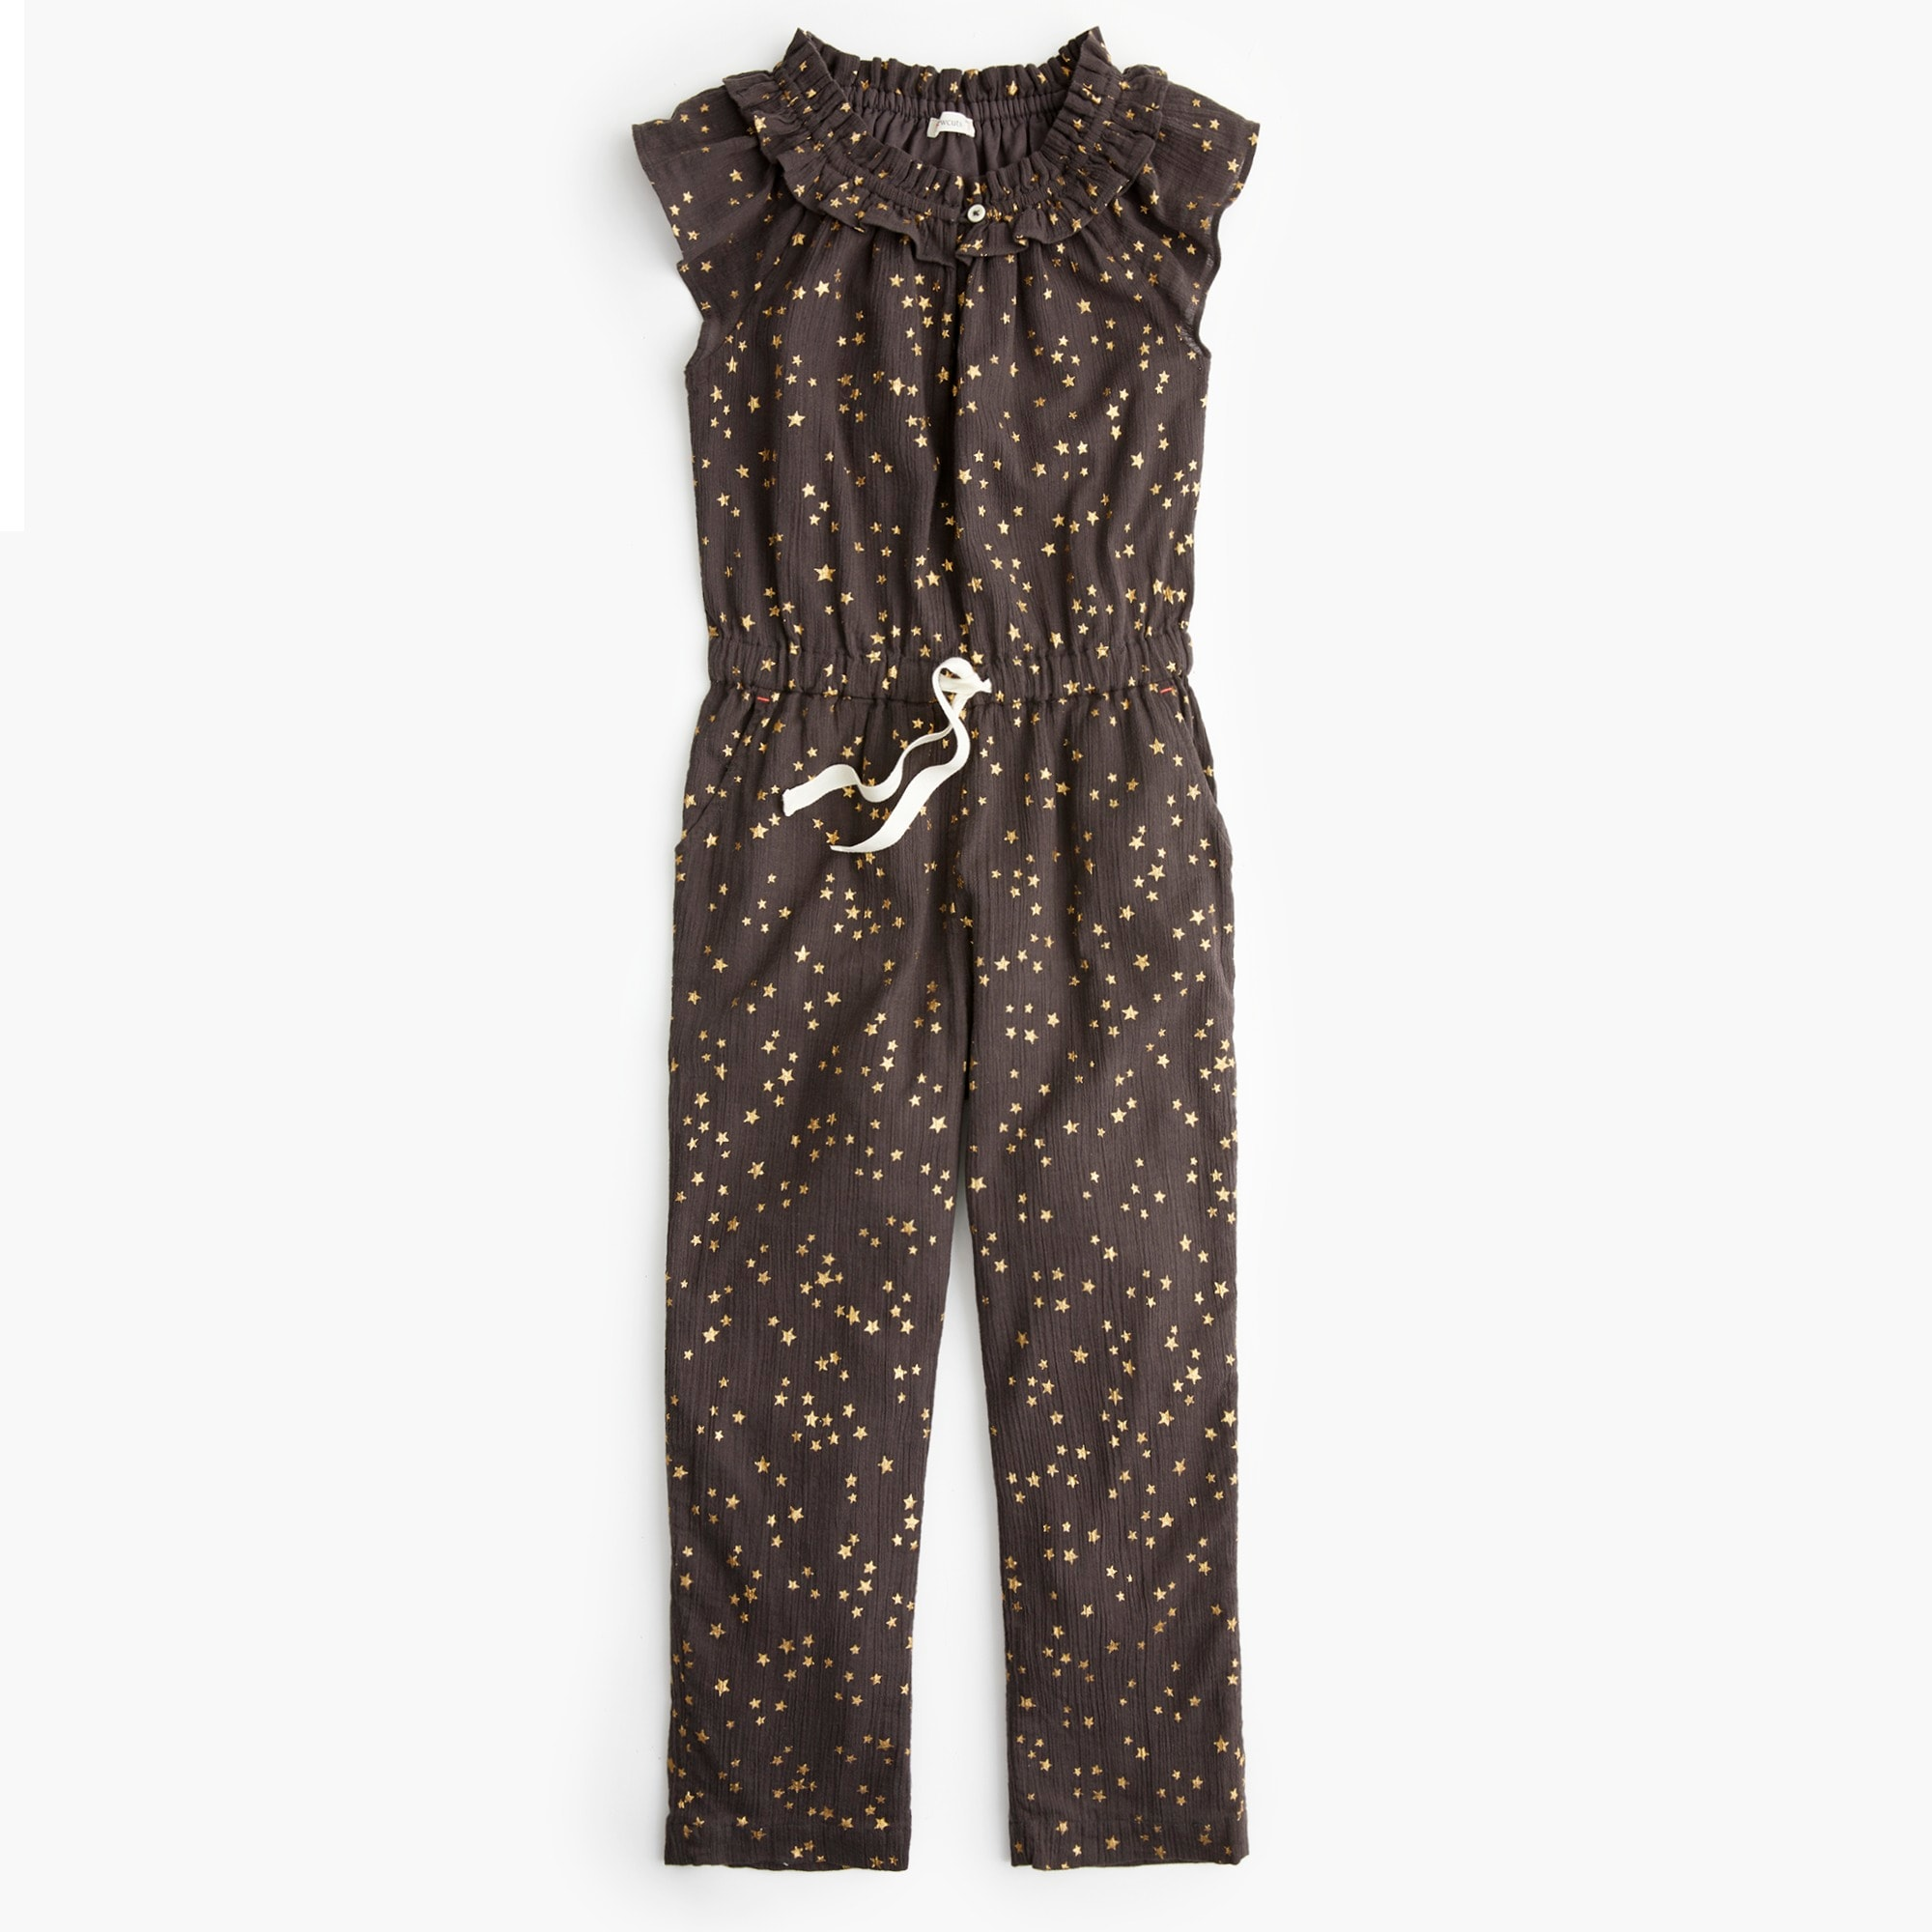 girls Girls' jumpsuit in stars